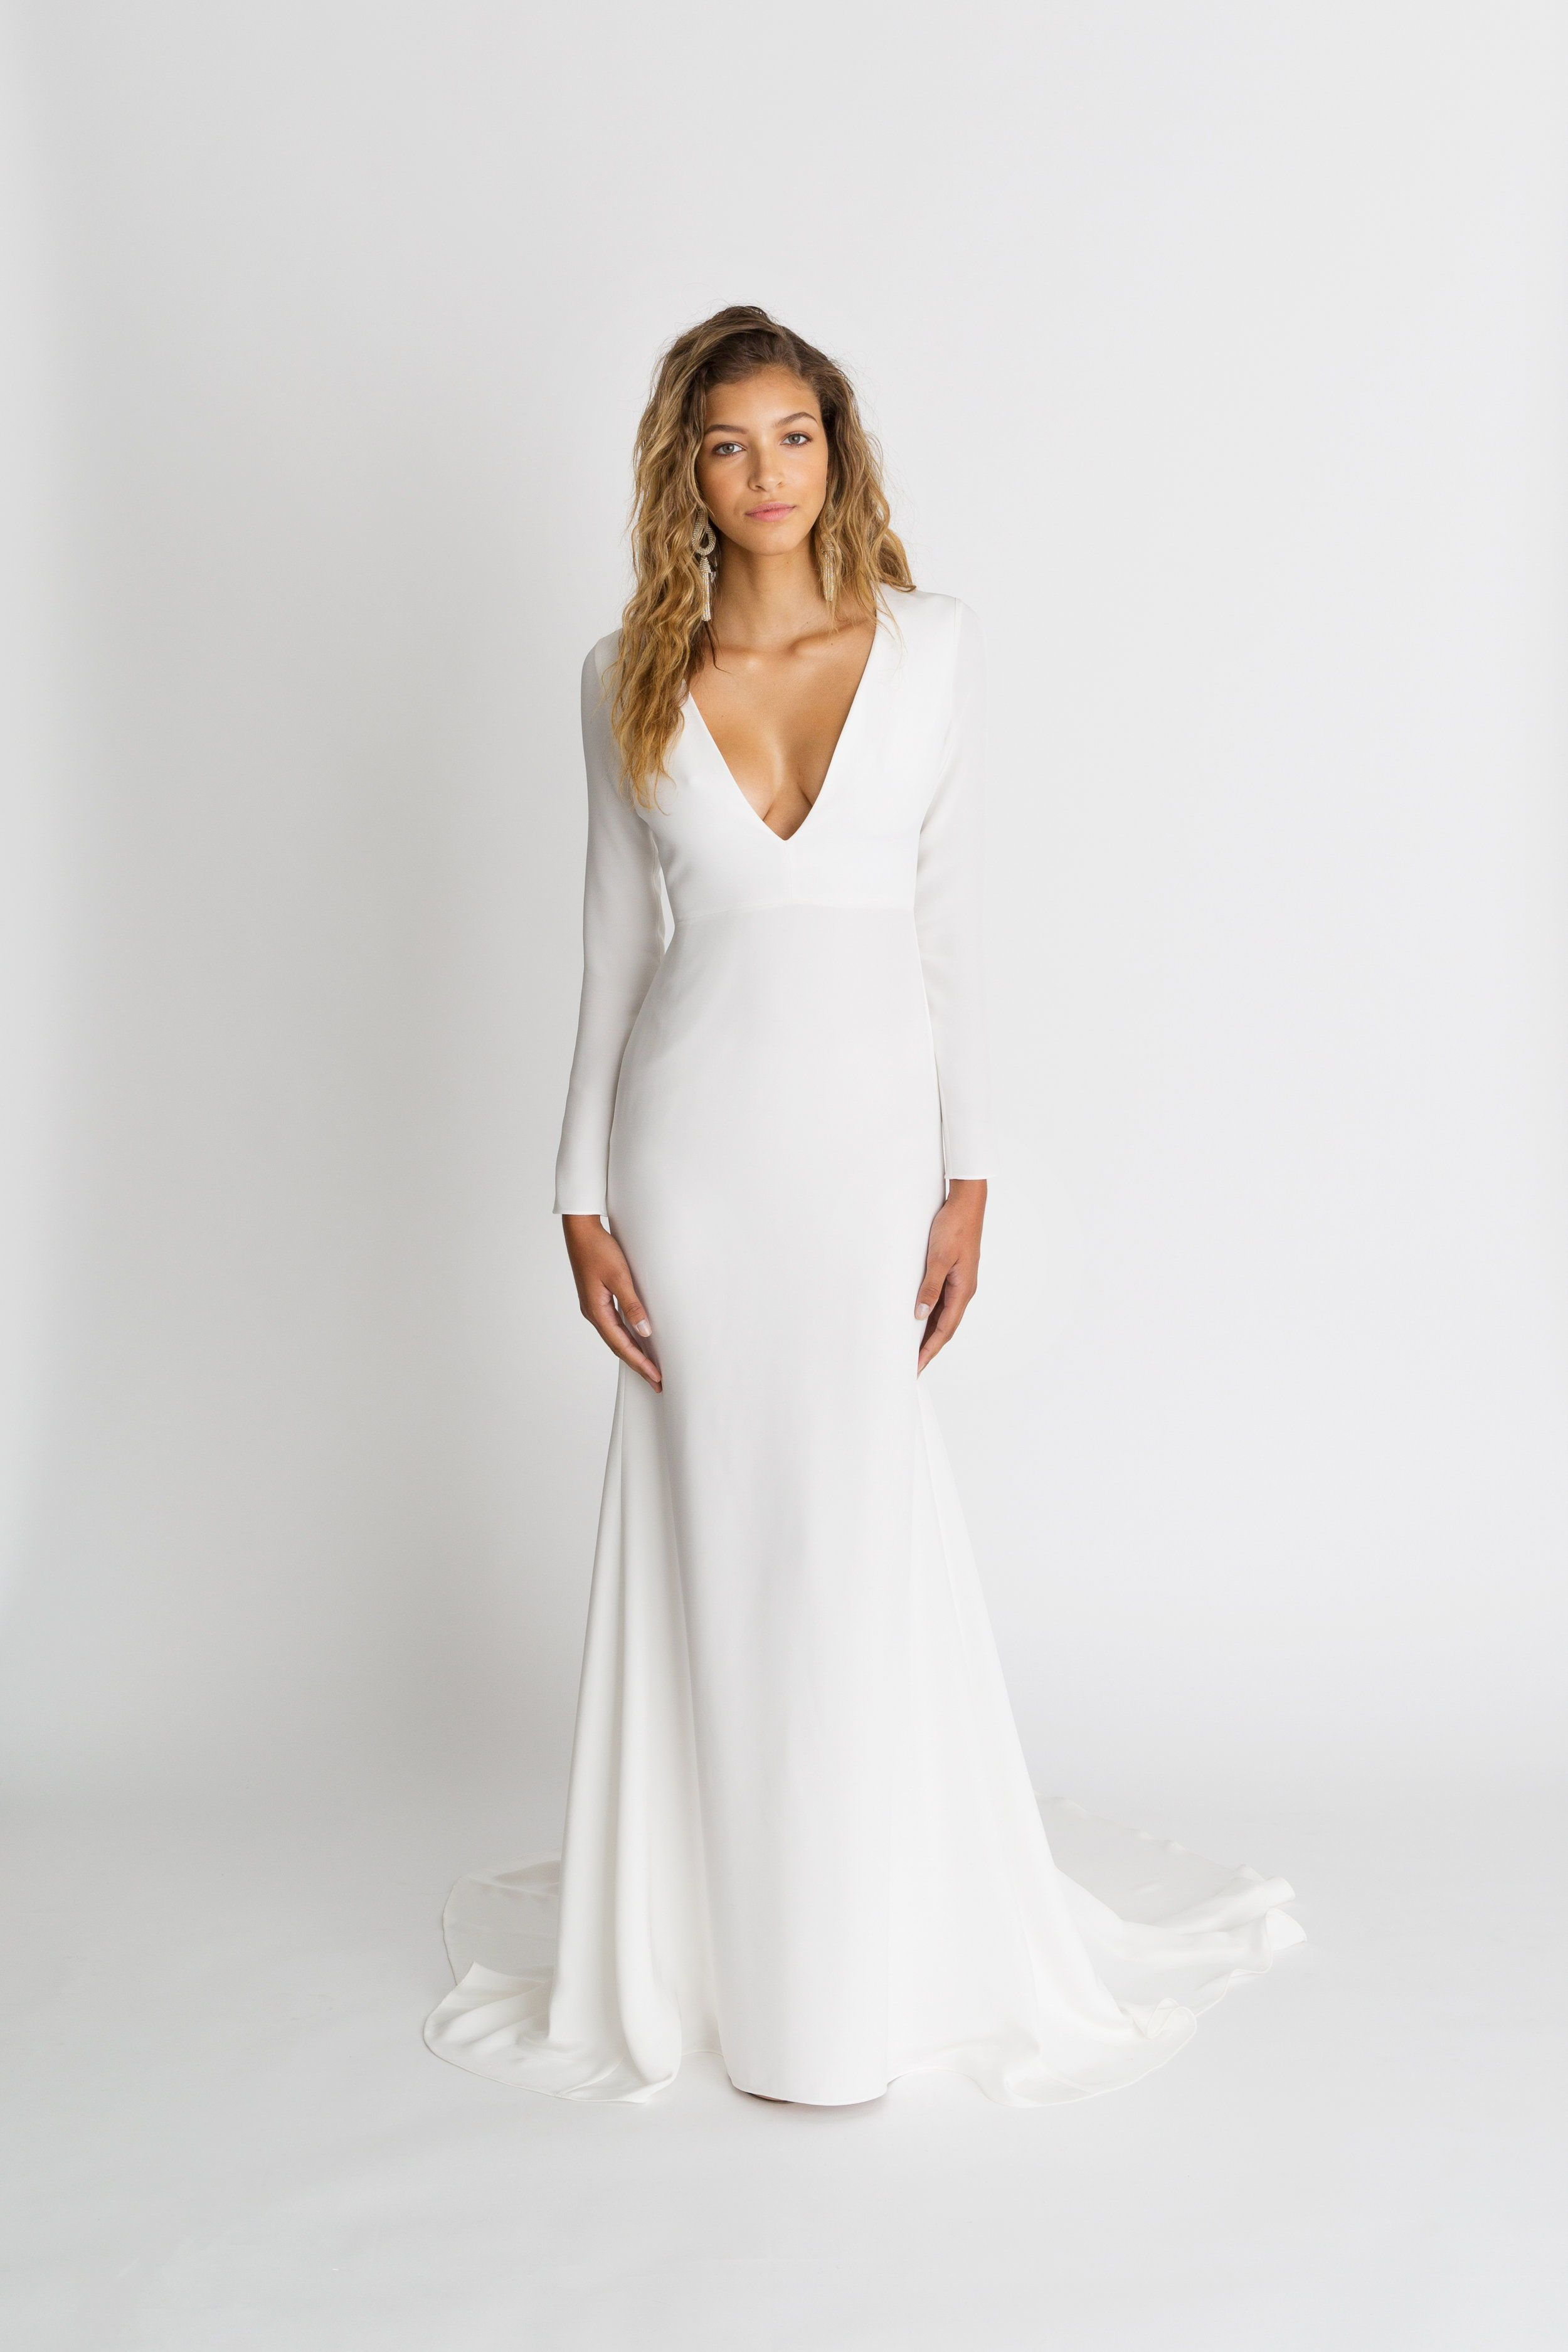 Celine By Alexandra Grecco Magic Hour Collection The Celine Gown Is A Sleek Silk Crepe S Sleek Wedding Dress Wedding Dress Long Sleeve Modern Wedding Dress